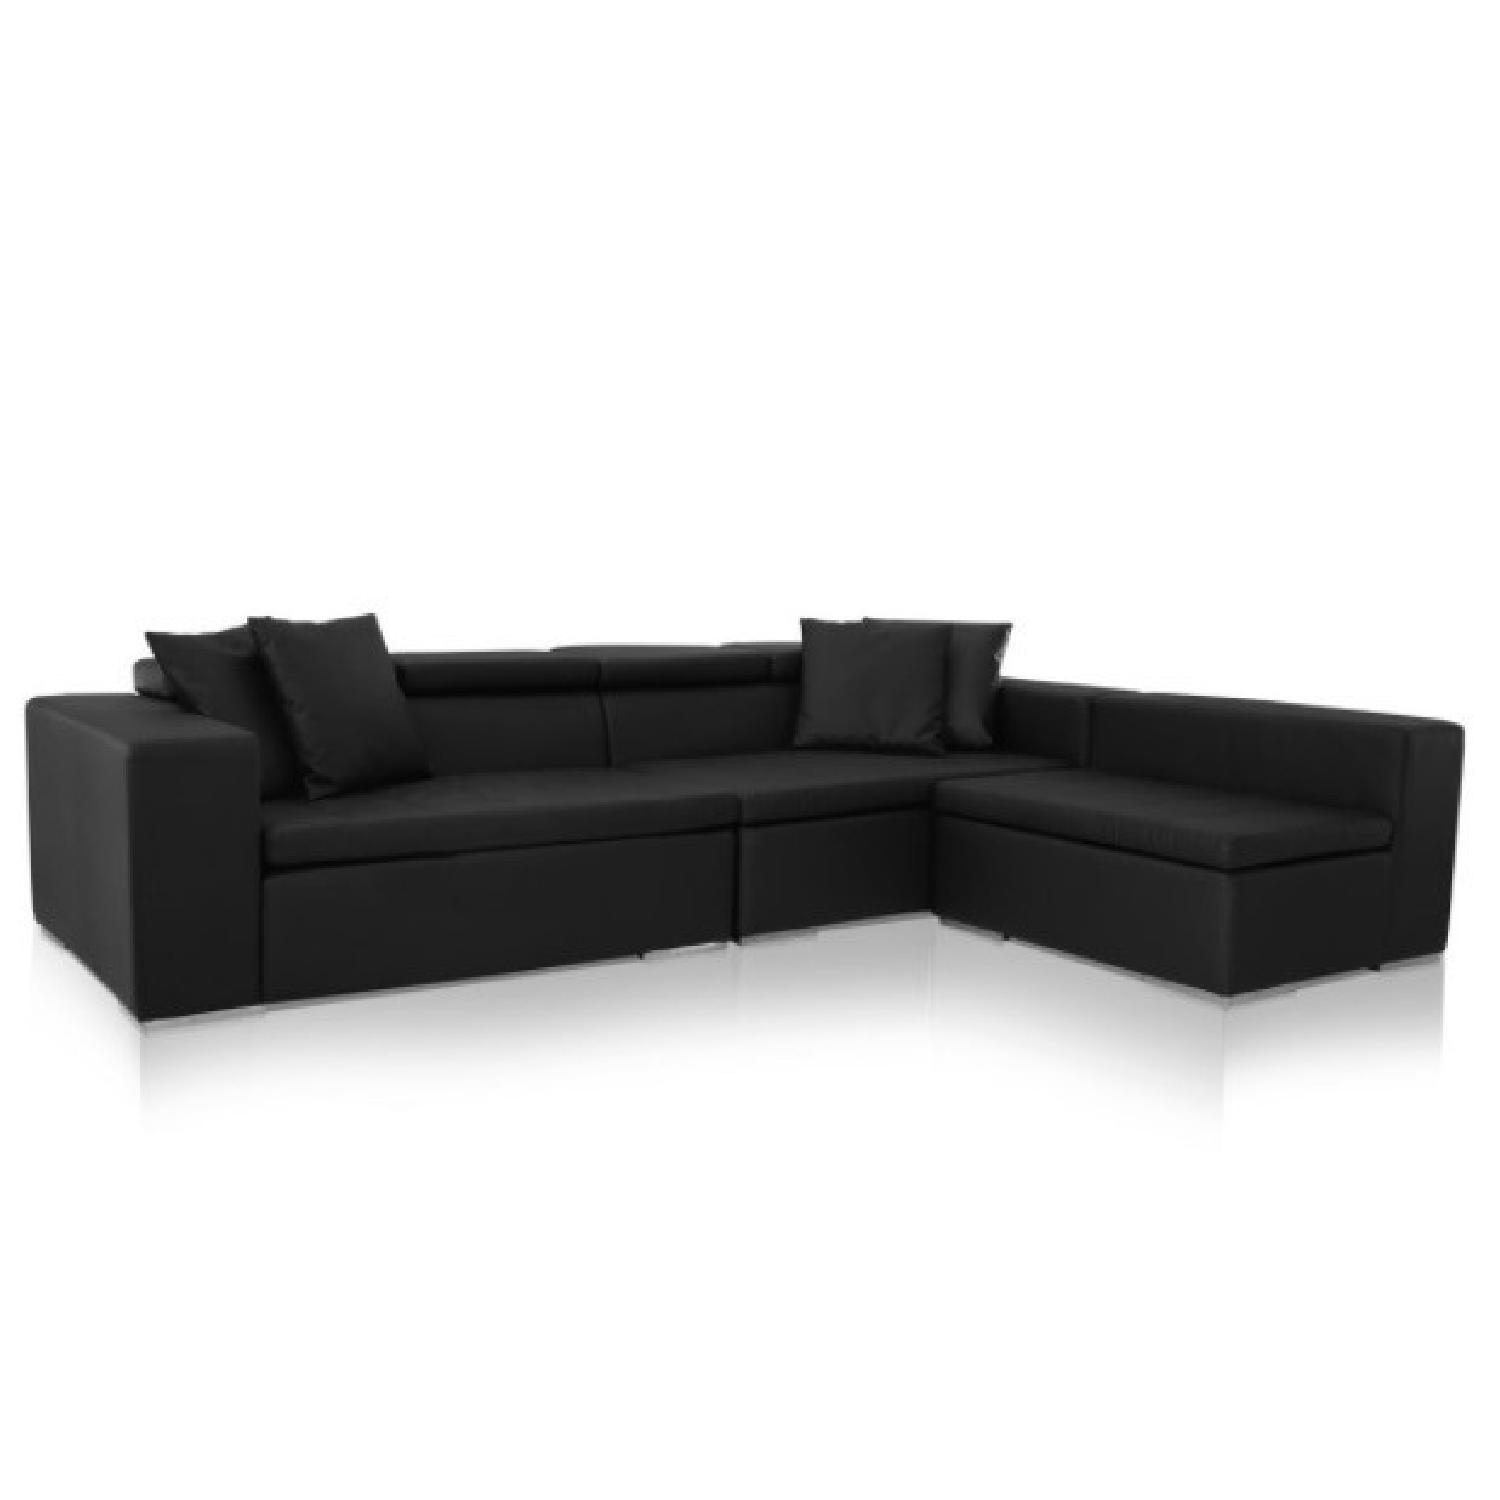 Monaco Leather Modern Sectional Sofa in Black - image-0